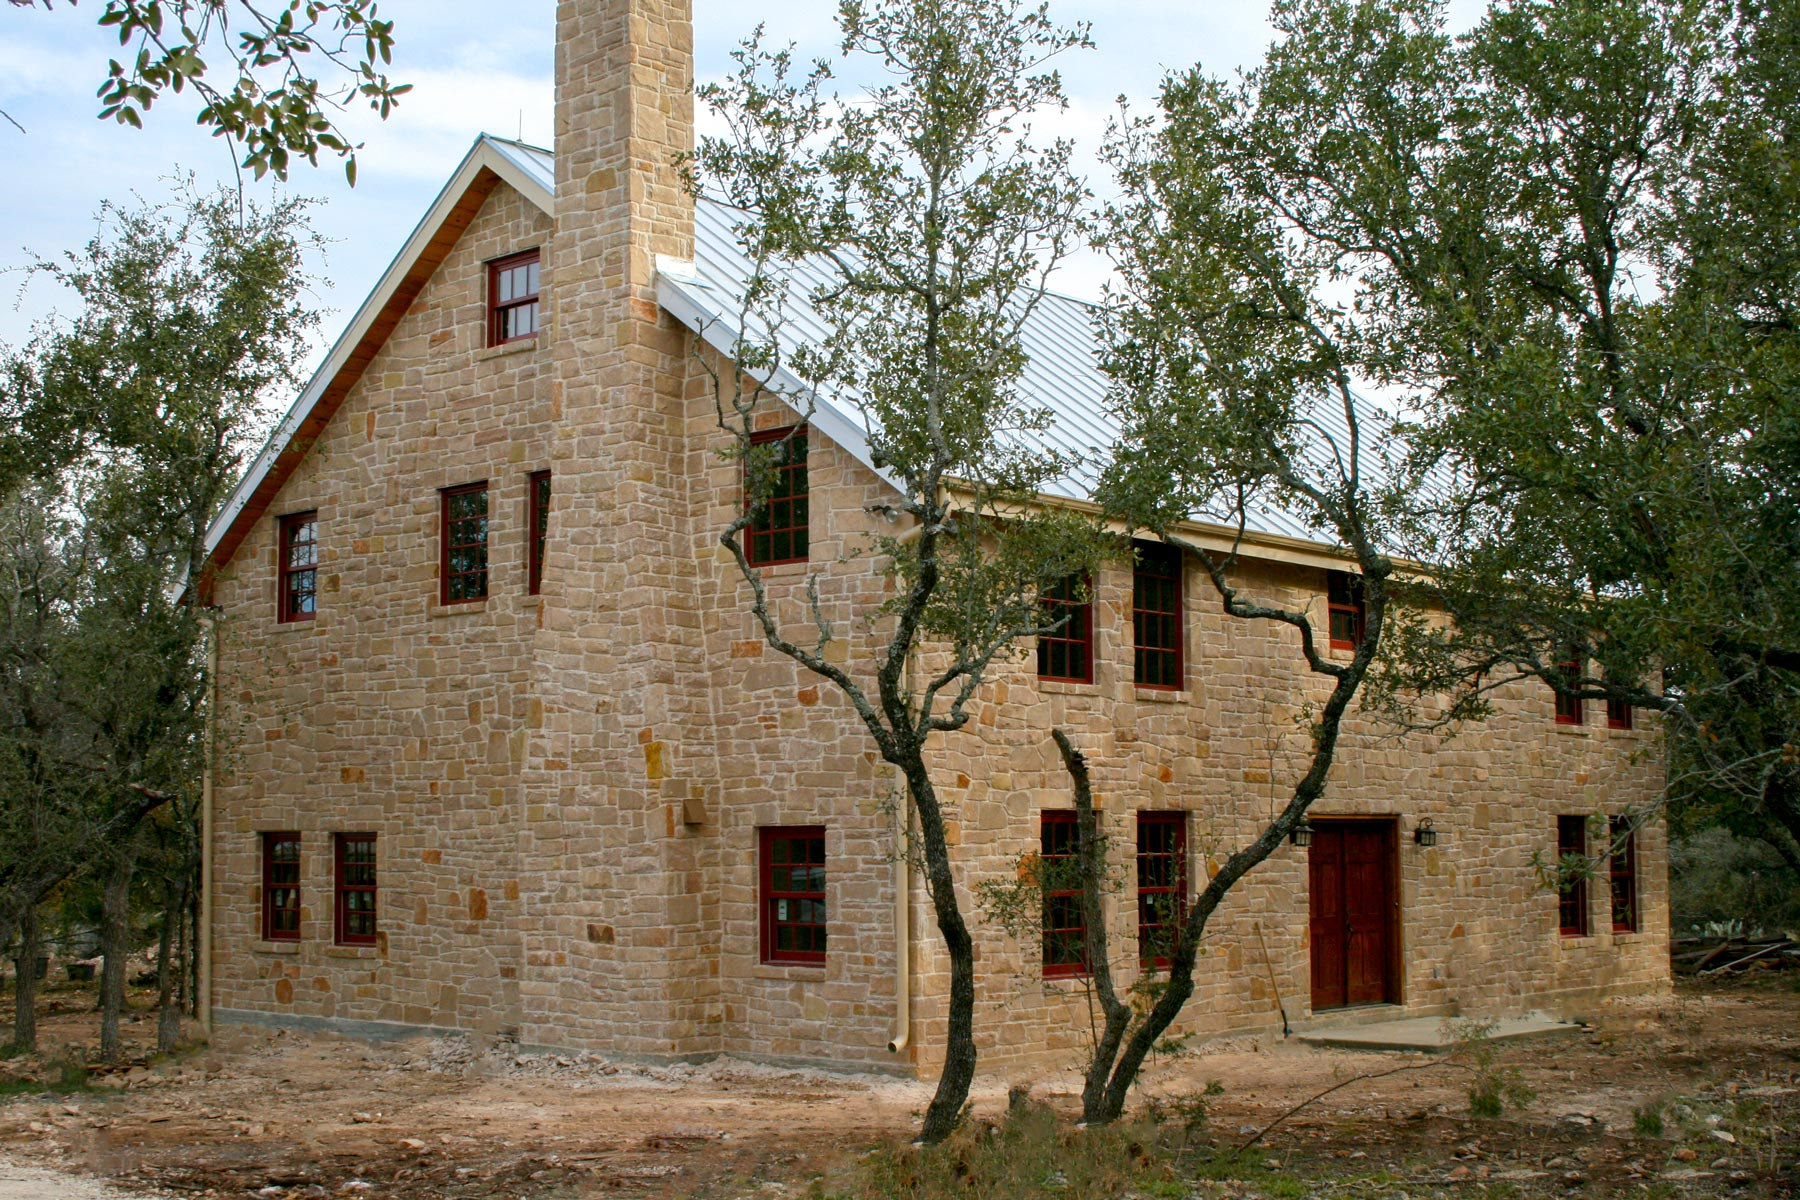 Excellent Texas Rustic Country Home 16 Rustic Country Home Exterior Rustic Country Home Interiors home decor Rustic Country Home